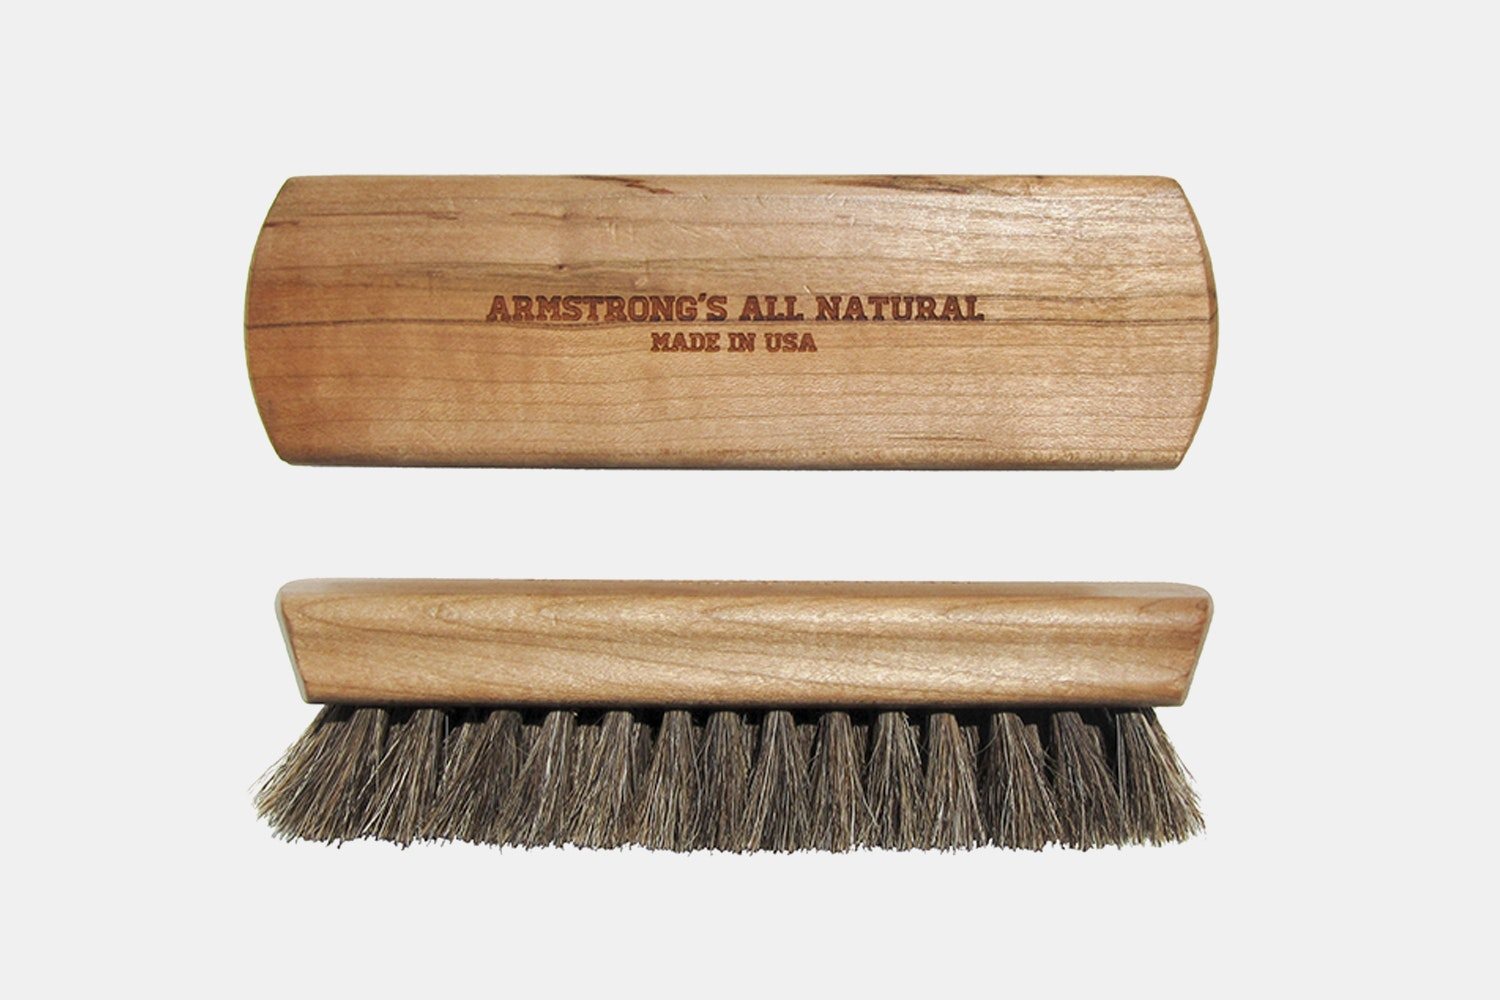 Armstrong's All Natural Shoeshine Box